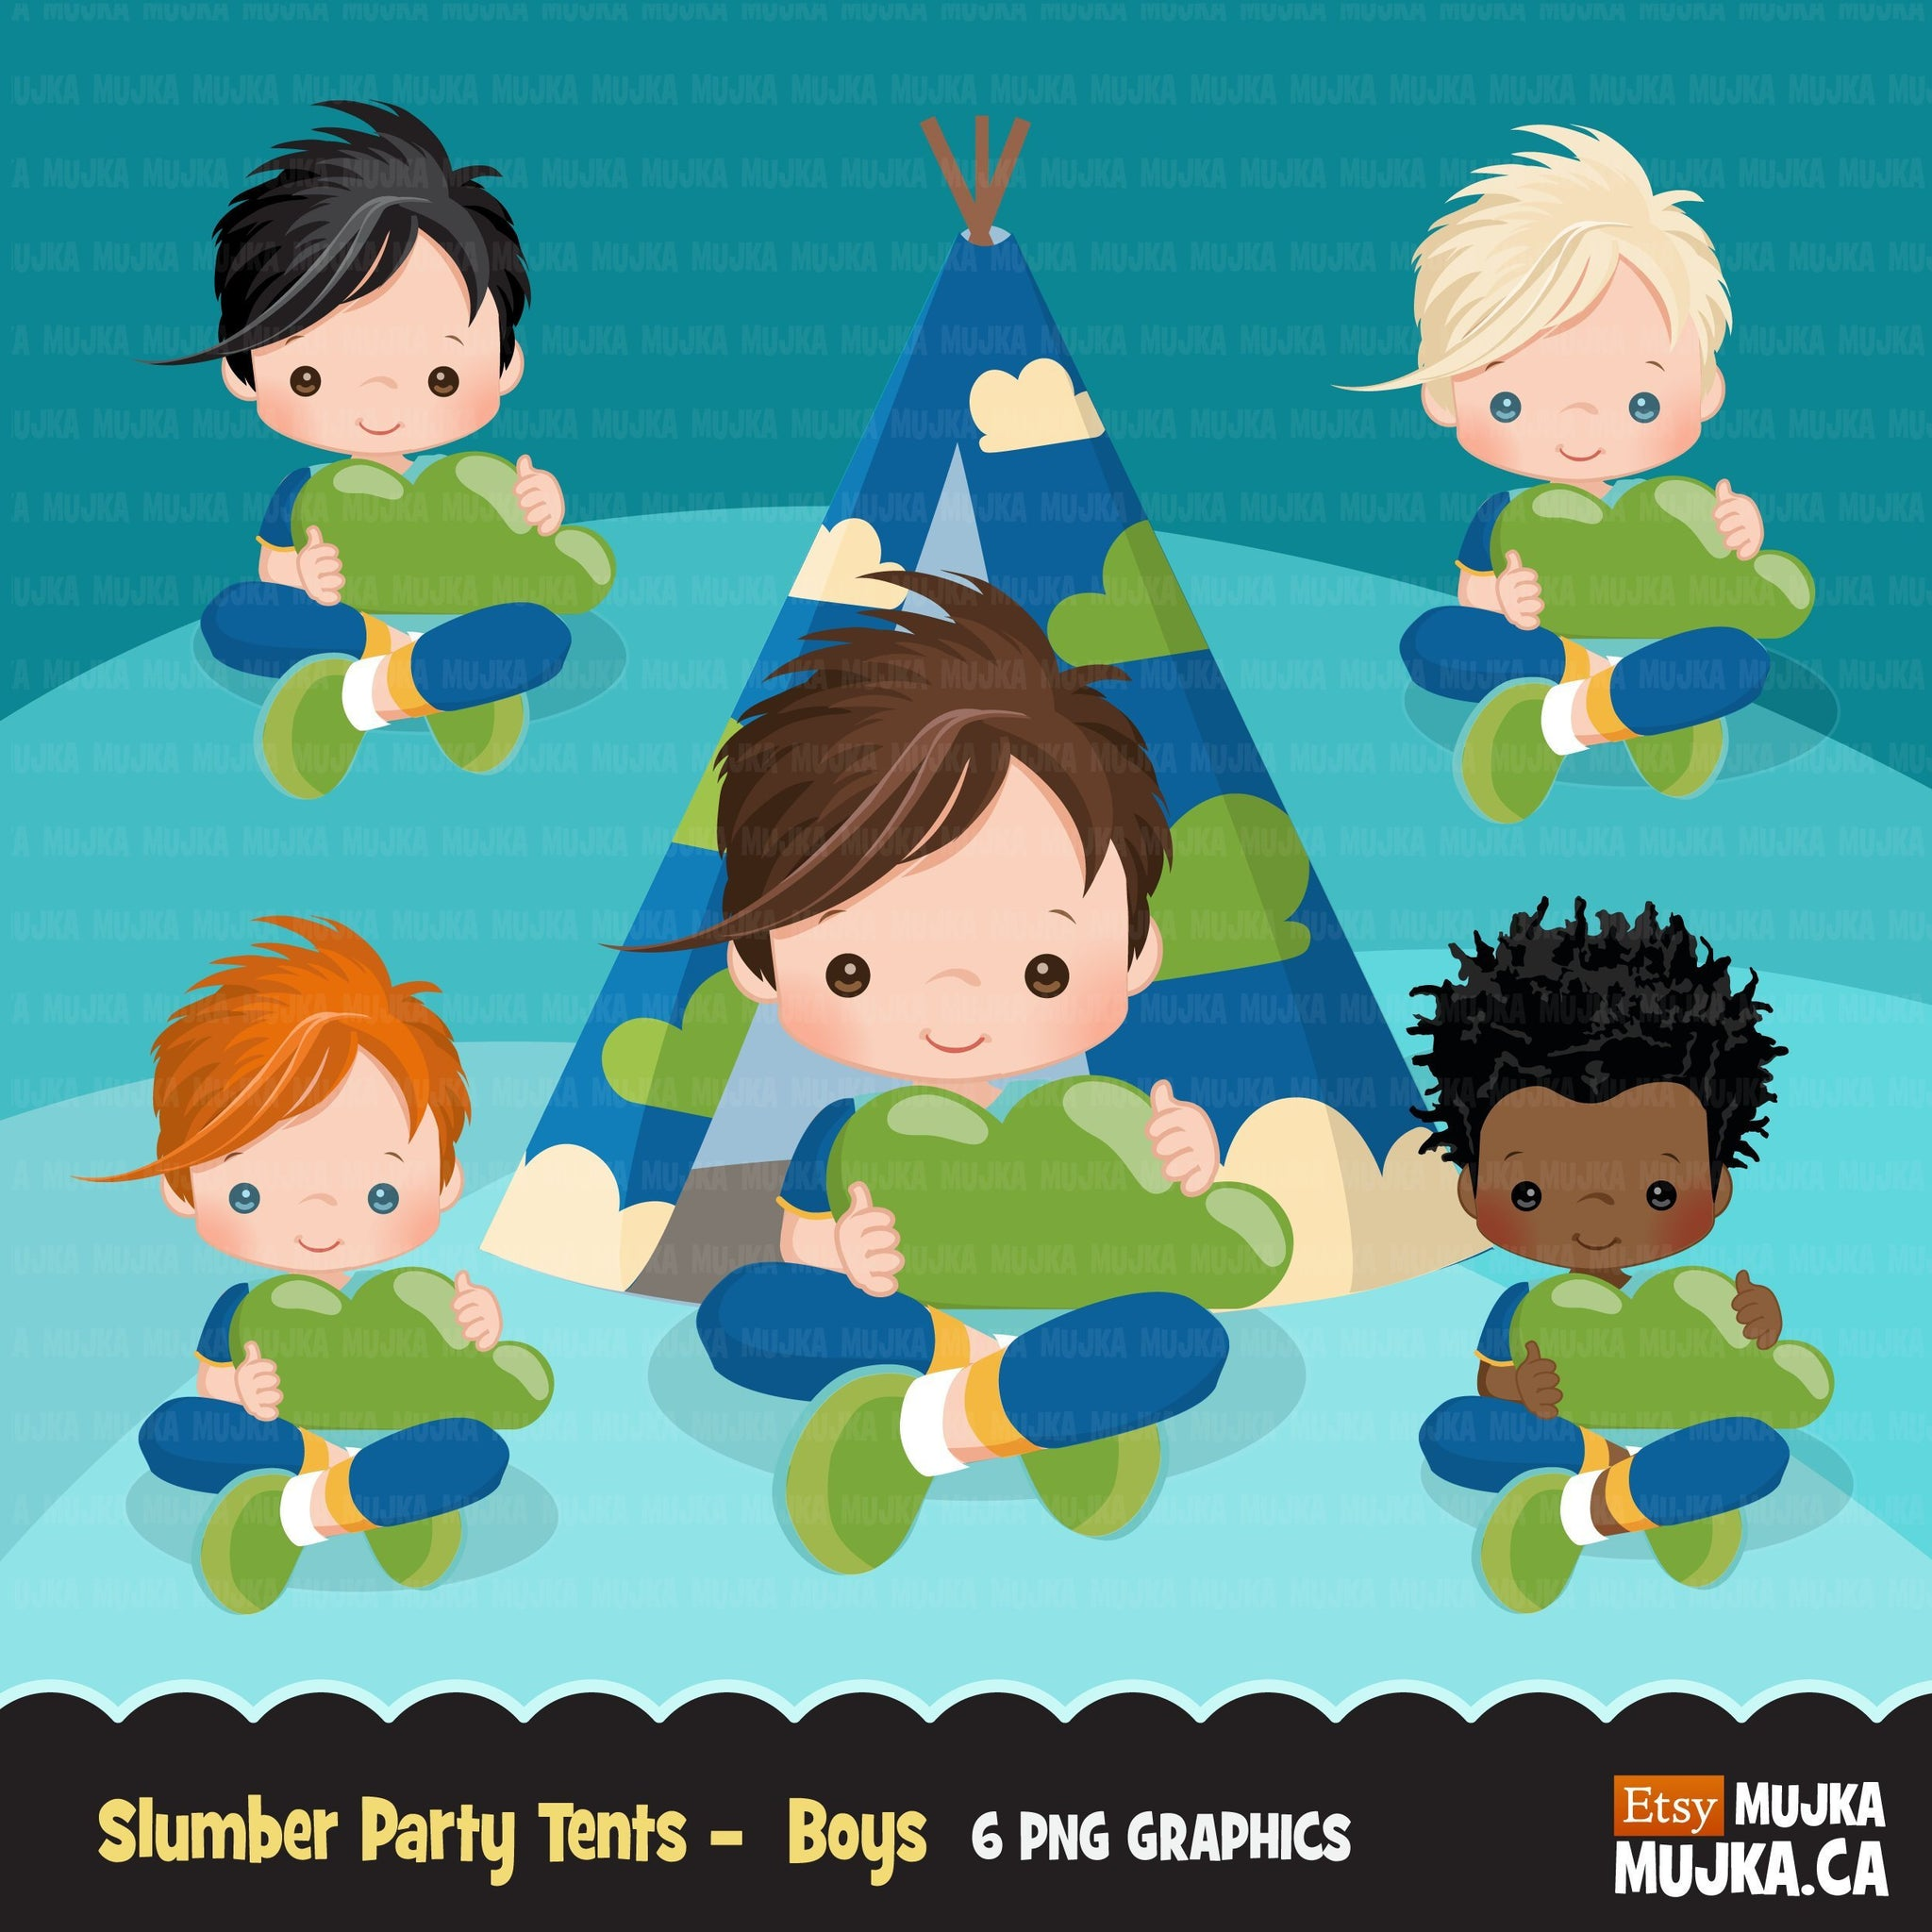 Slumber party clipart, sleepover tents for boy